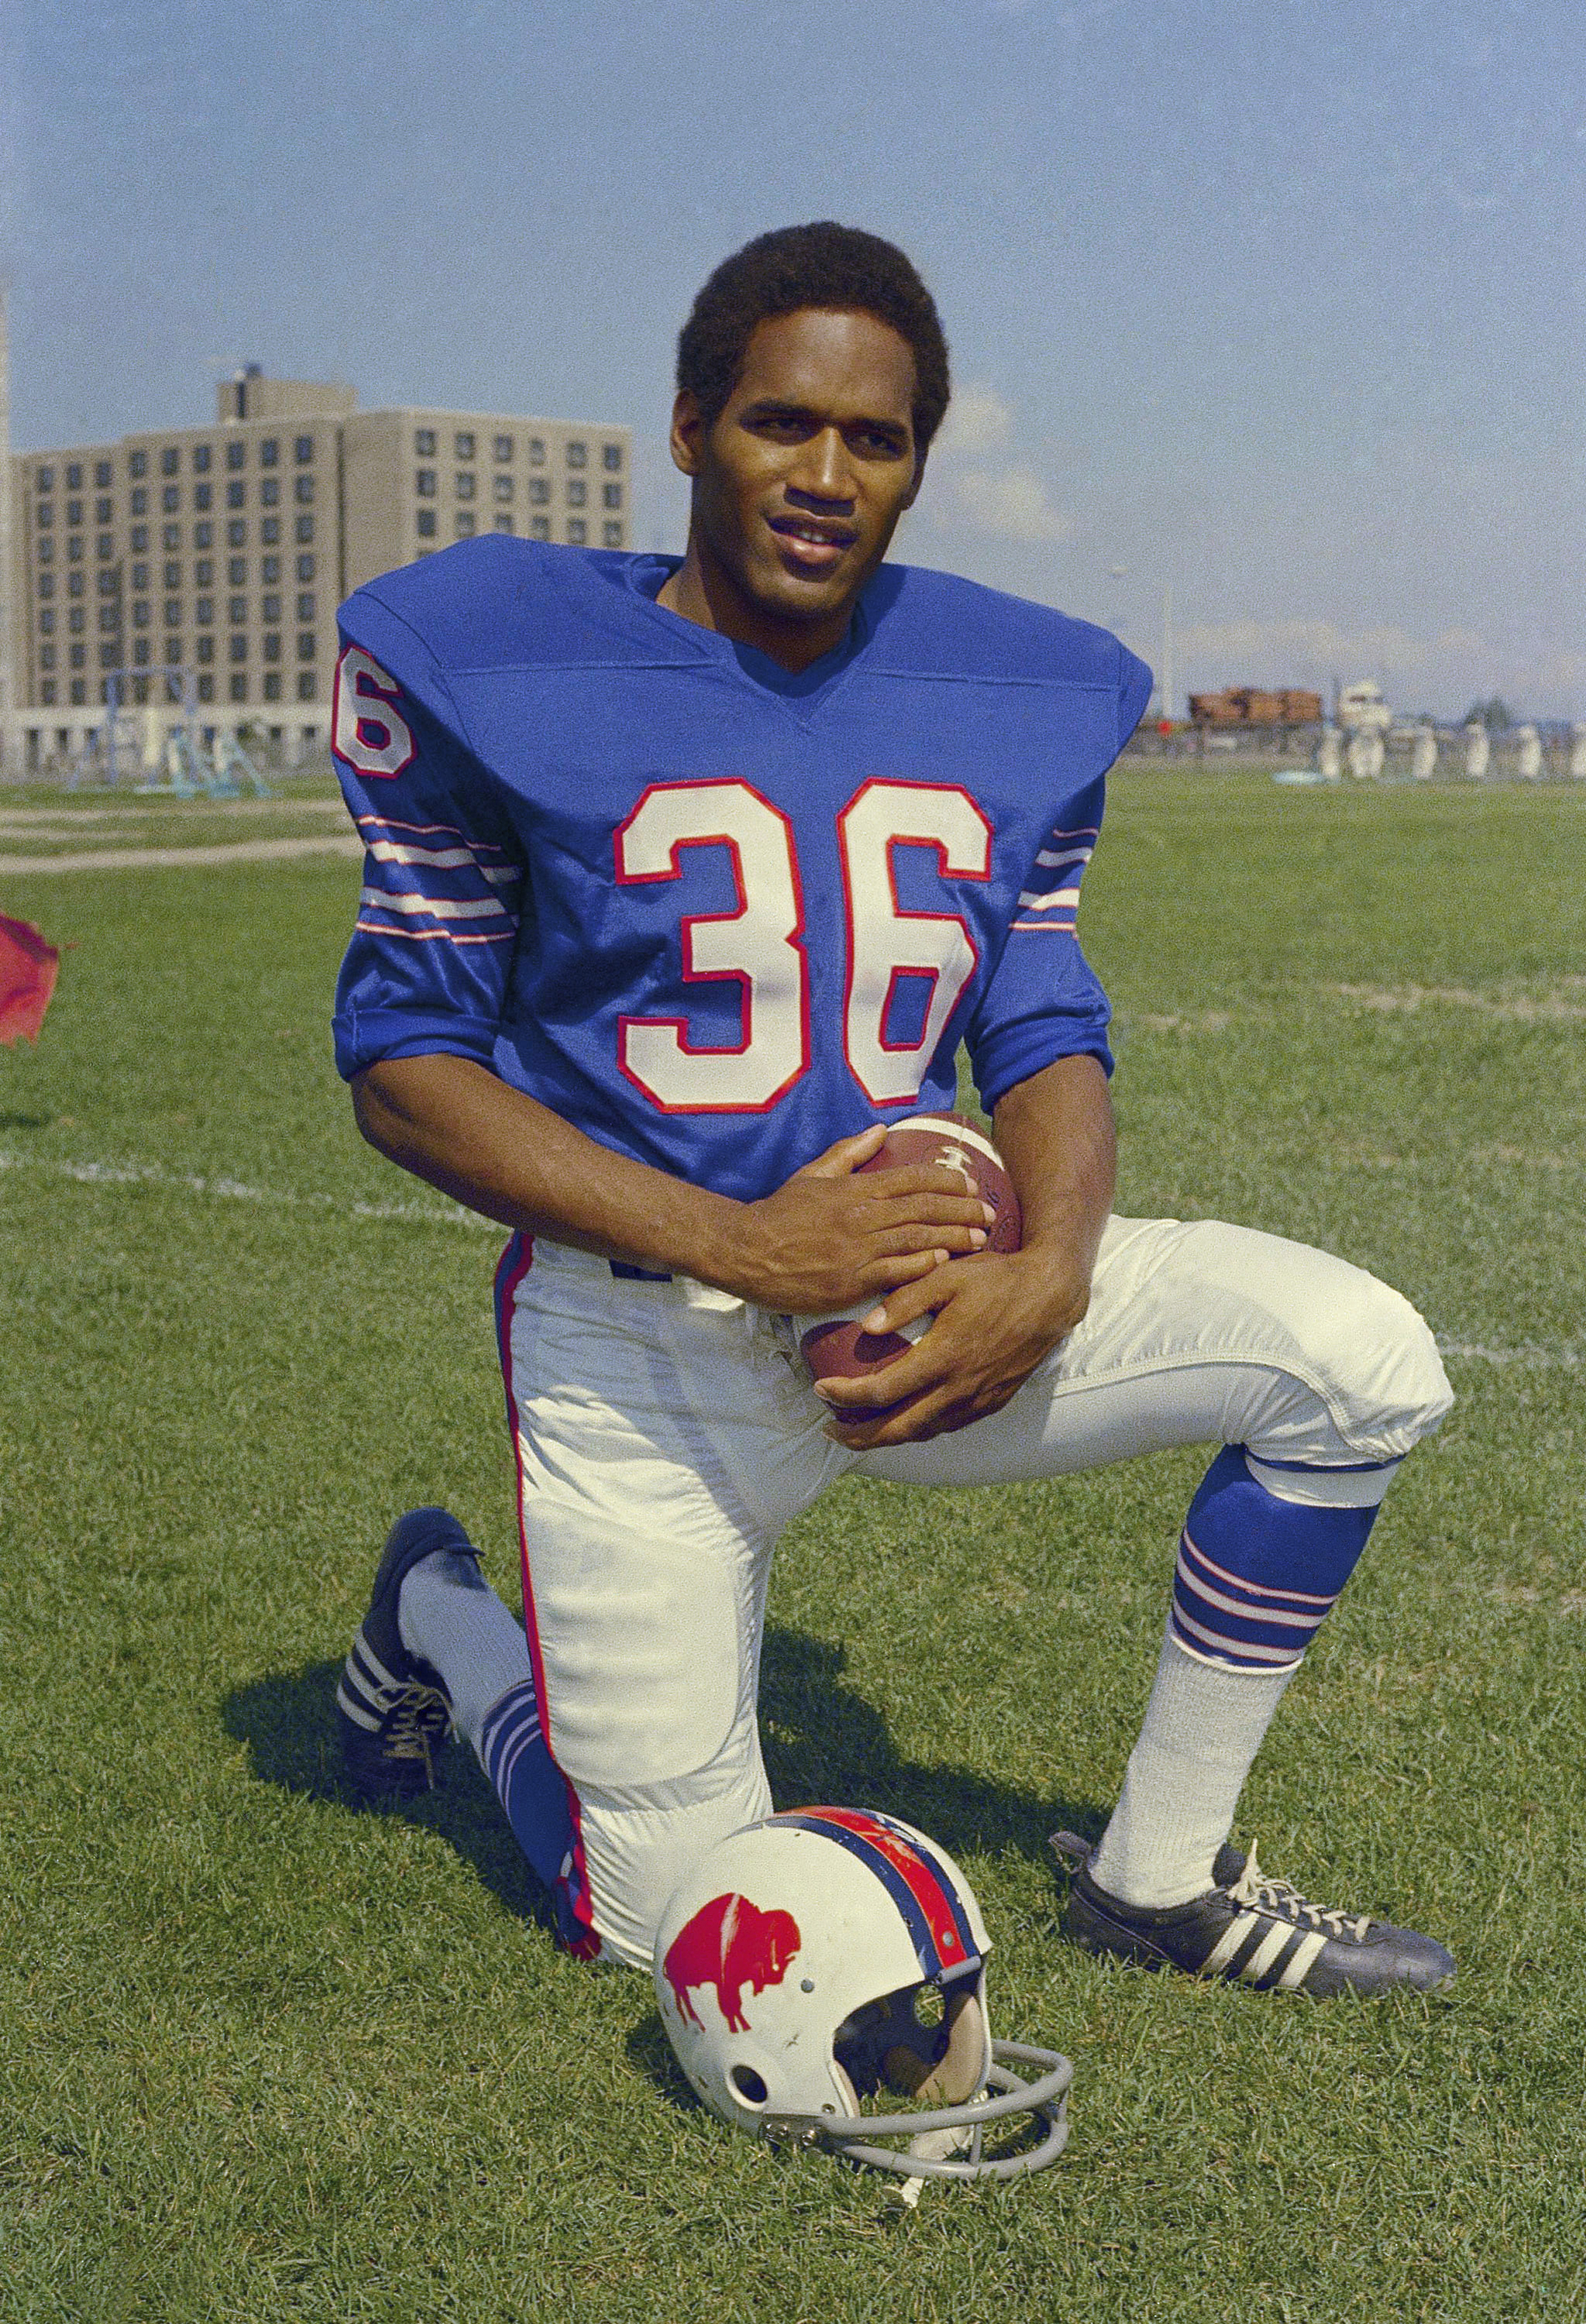 FILE - In this 1969 file photo, shows O.J. Simpson, football player for the Buffalo Bills. 1969: The first pick in the pro draft, Simpson goes to the Buffalo Bills and spends the next nine seasons with the team. O.J. Simpson's release from a Nevada prison turns another page in one of the most dramatic falls from grace in American pop culture history. A beloved college and pro football hero in the 1960s and '70s, Simpson went on to become a movie star, sports commentator and TV pitchman in the years before the 1994 killings of his ex-wife and her friend in Los Angeles. A Nevada prison official said early Sunday, Oct. 1, 2017, O.J. Simpson, the former football legend and Hollywood star, has been released from a Nevada prison in Lovelock after serving nine years for armed robbery. (AP Photo/File)